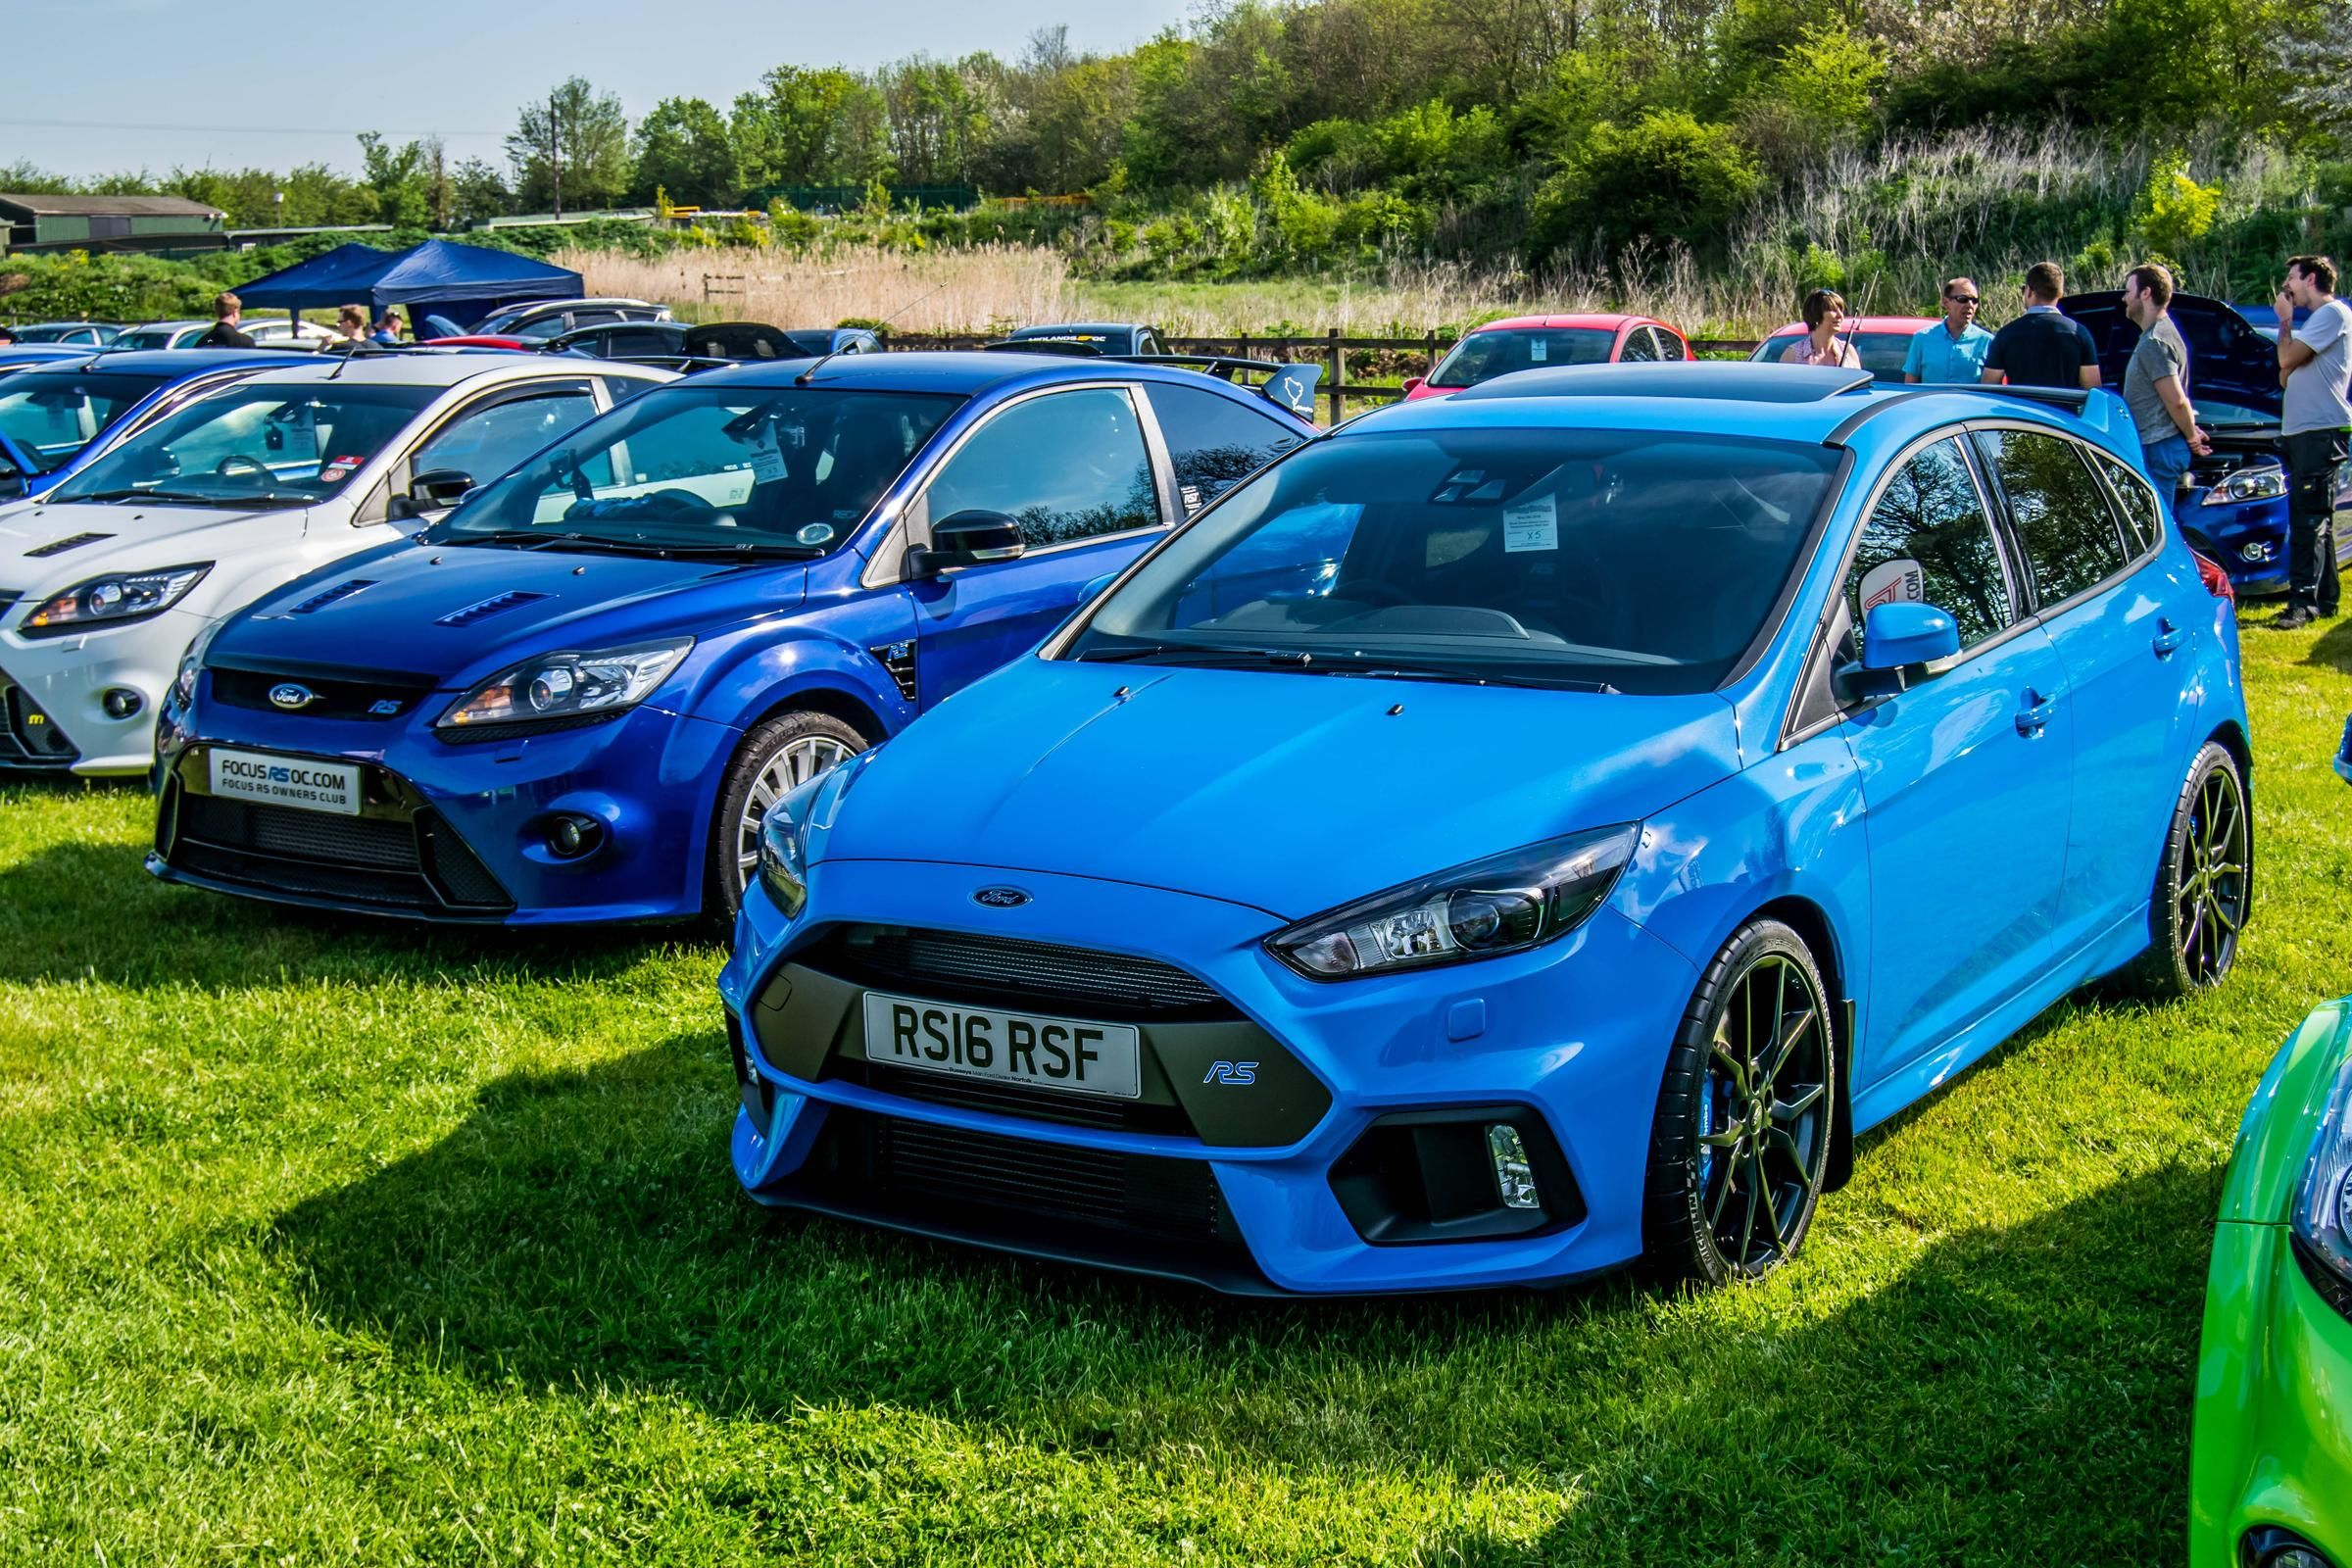 The New Blue Ford Focus Rs Really Is Stunning In Person 2400x1600